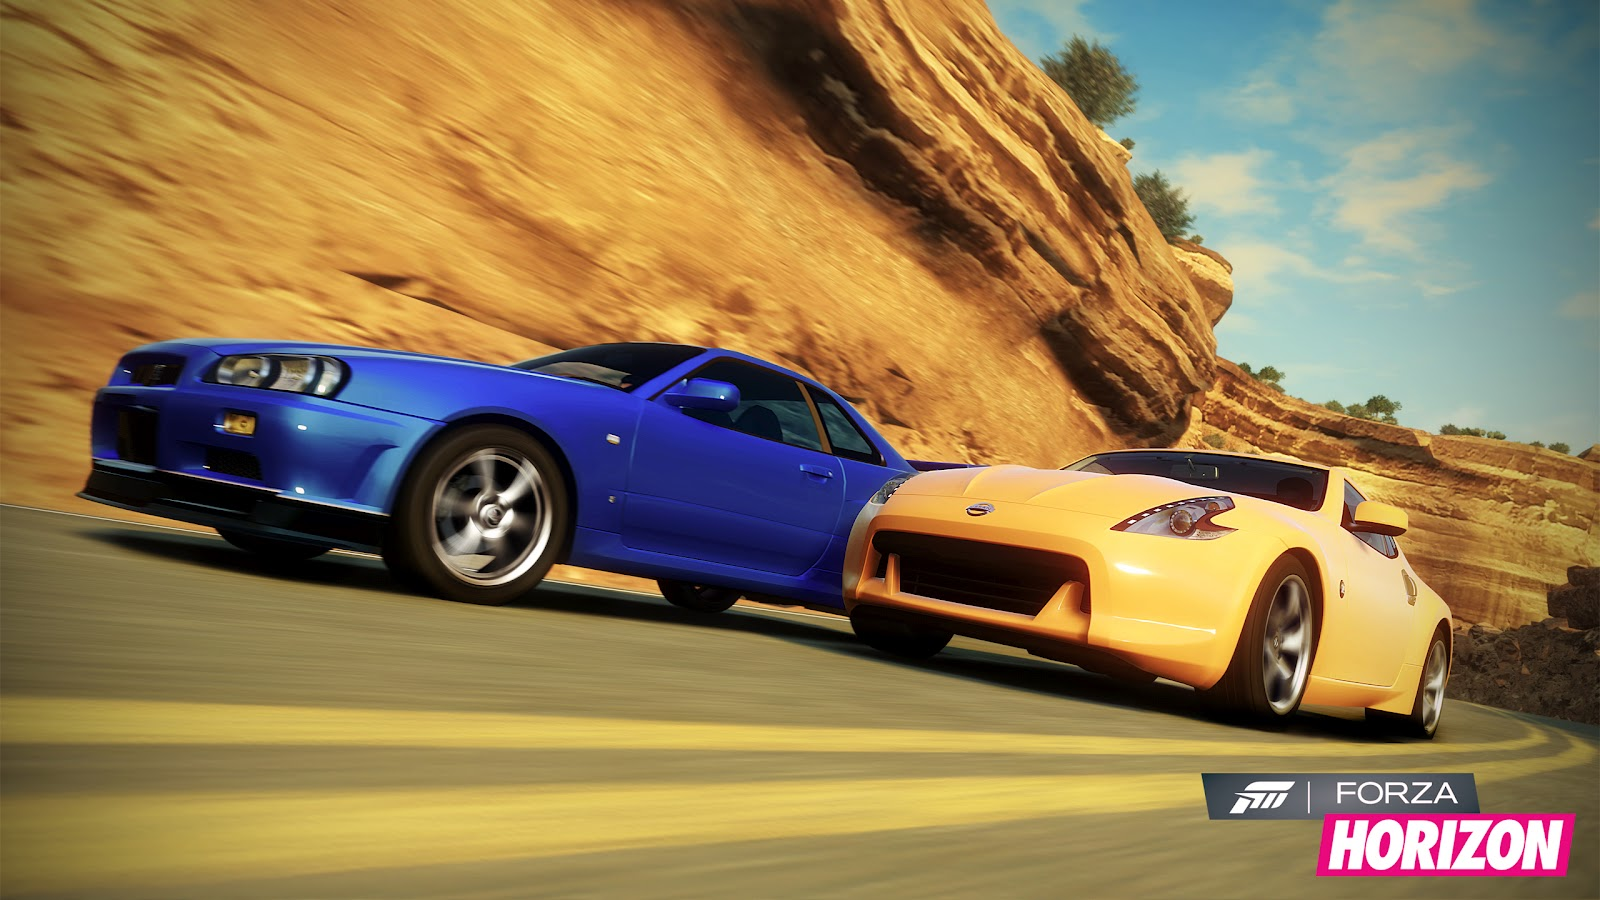 Forza Horizon HD & Widescreen Wallpaper 0.909054977348502